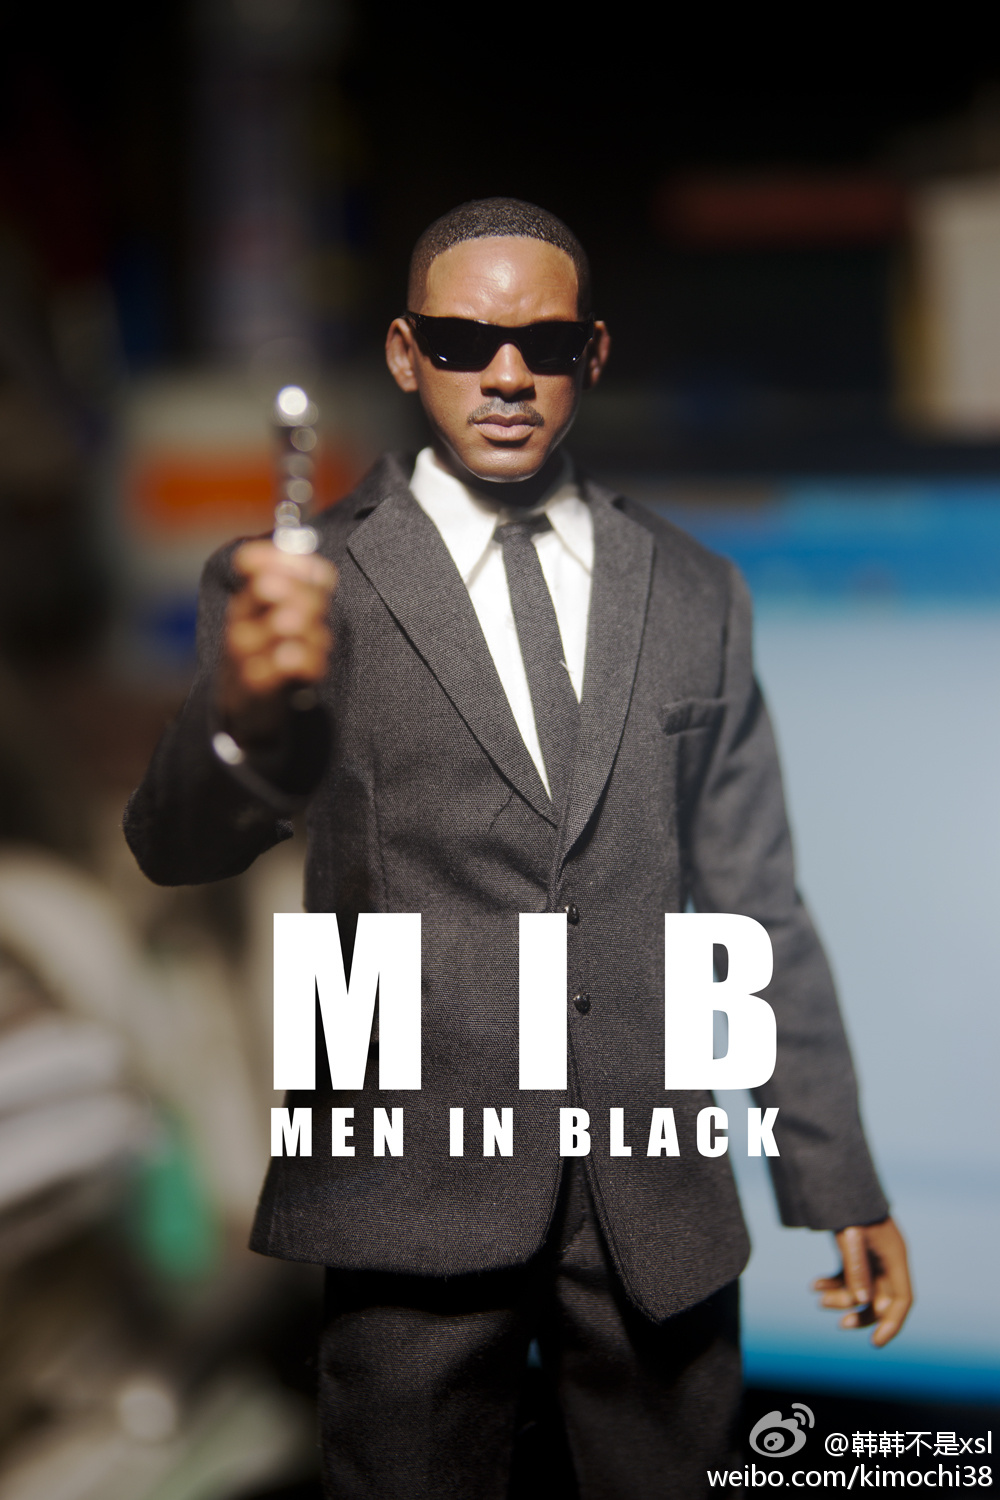 [Enterbay] Men In Black 1:6 Real Masterpiece figure - Página 17 68d46db9gw1du9kv0yyylj